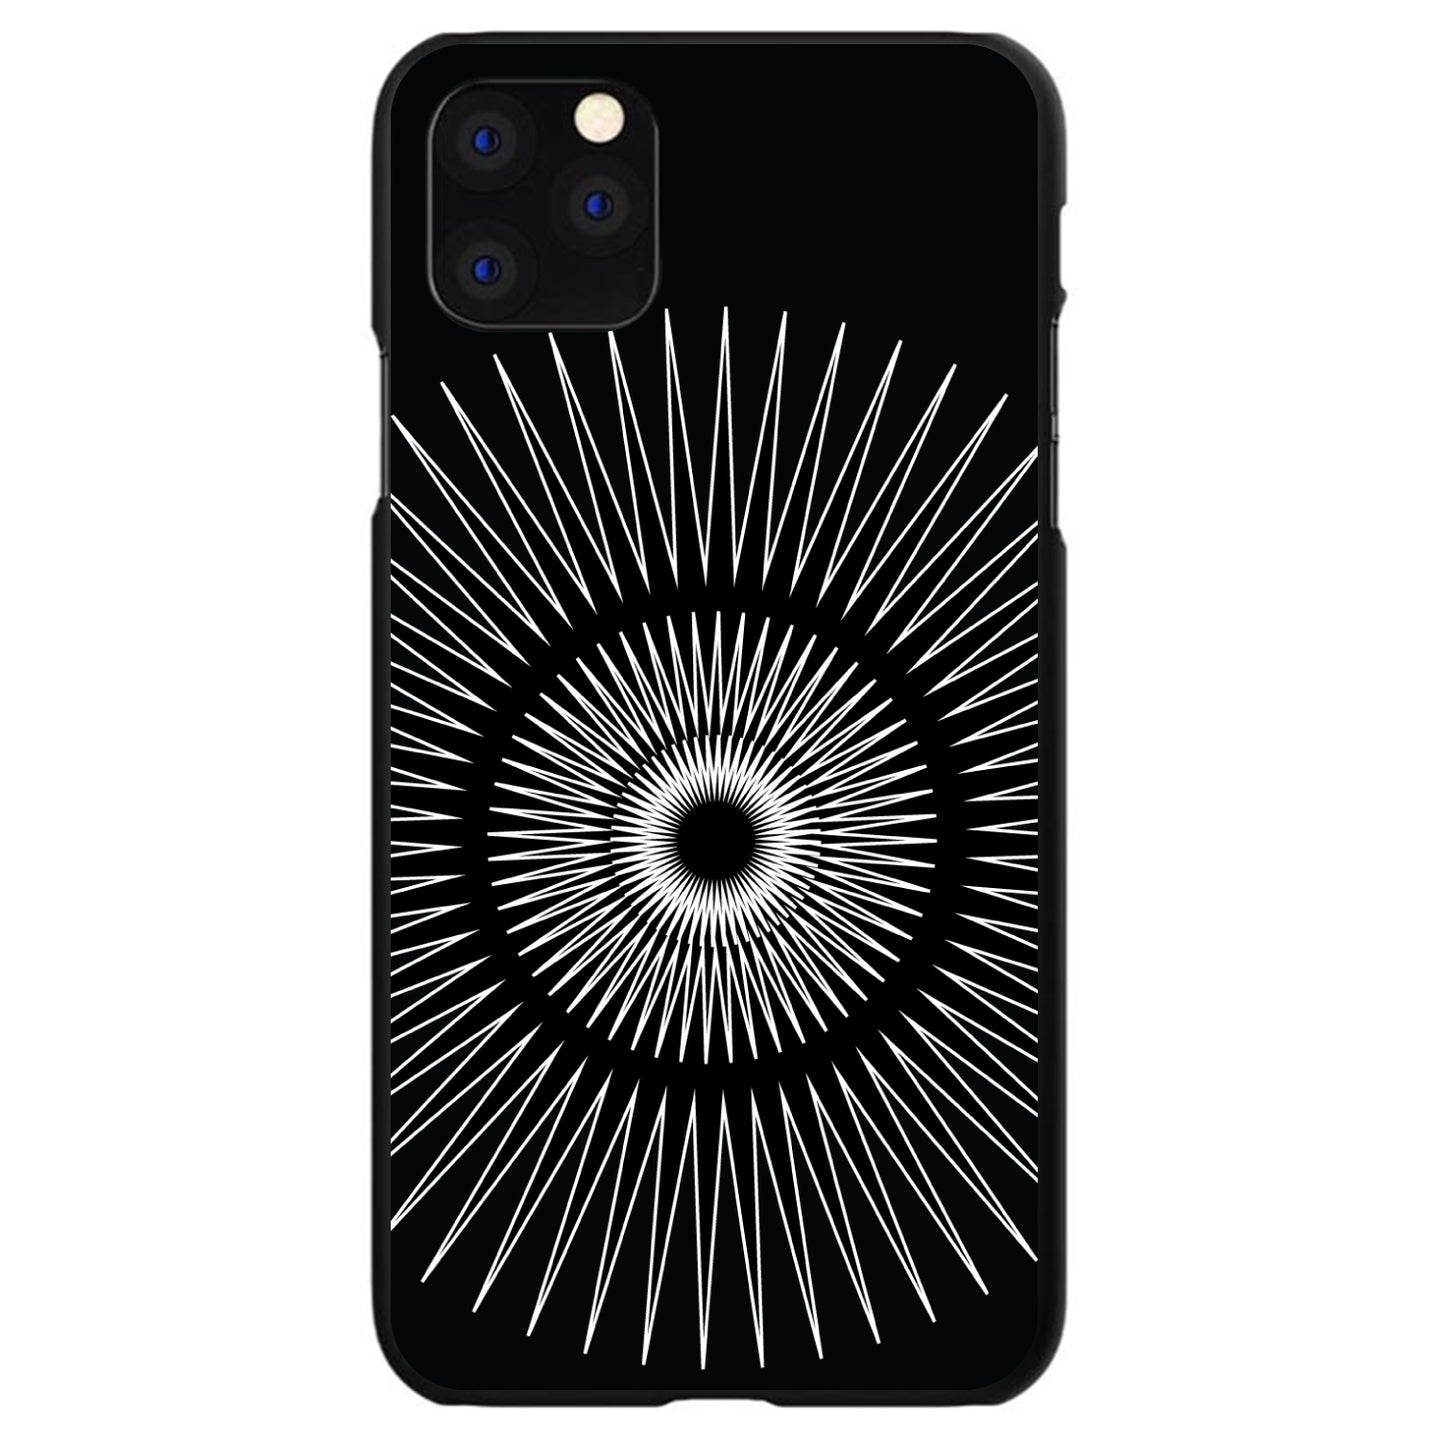 DistinctInk® Hard Plastic Snap-On Case for Apple iPhone - Black White Star Bursts